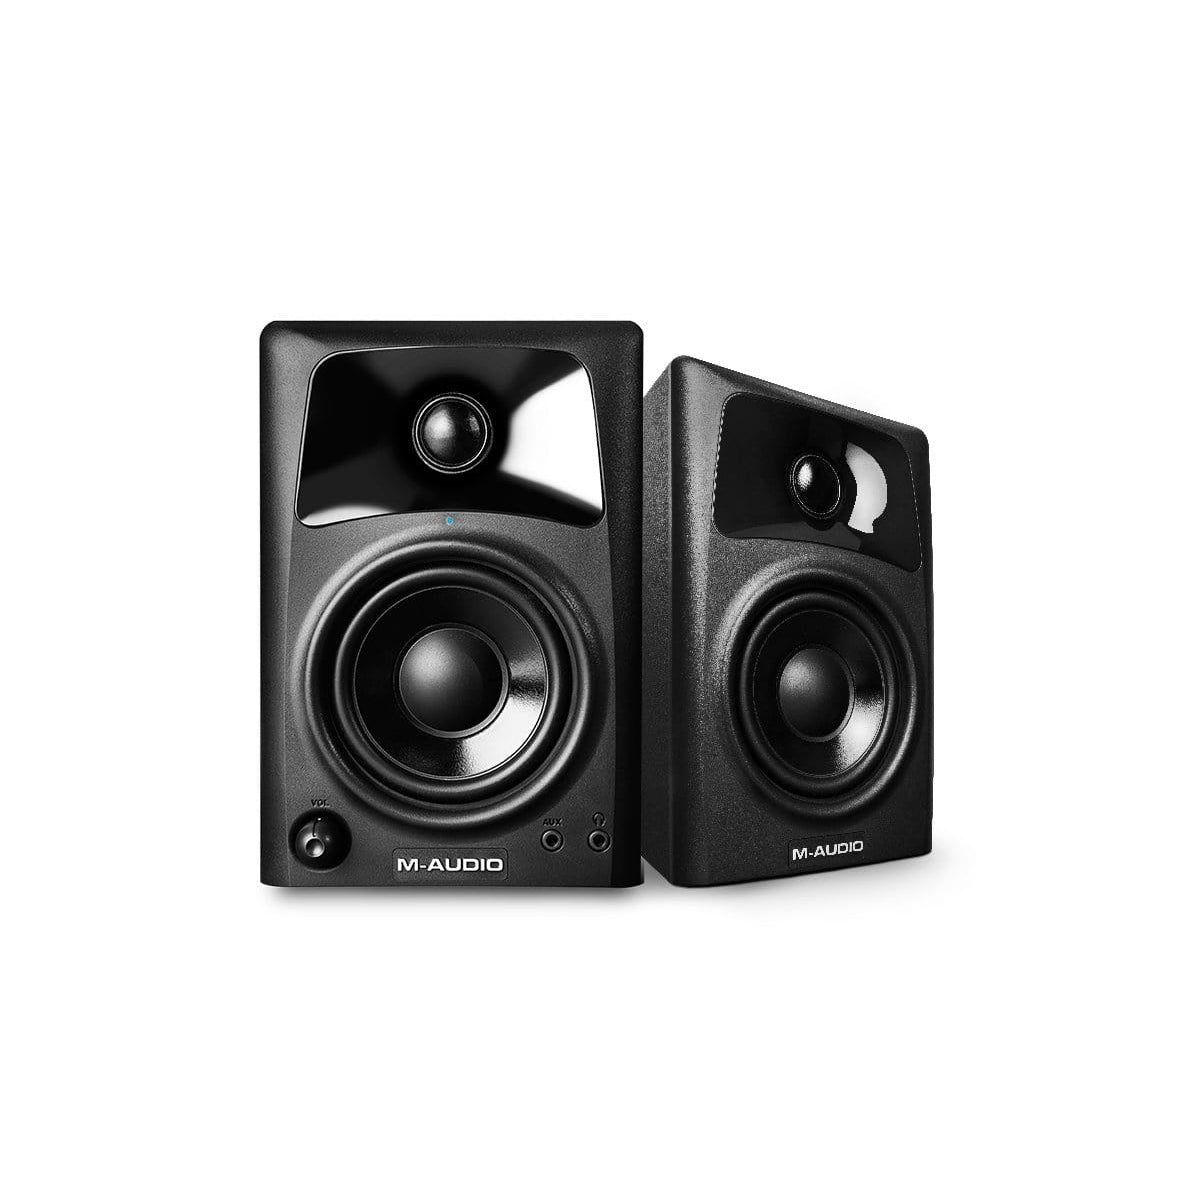 M-Audio AV32 Compact Active Desktop Monitor Speakers